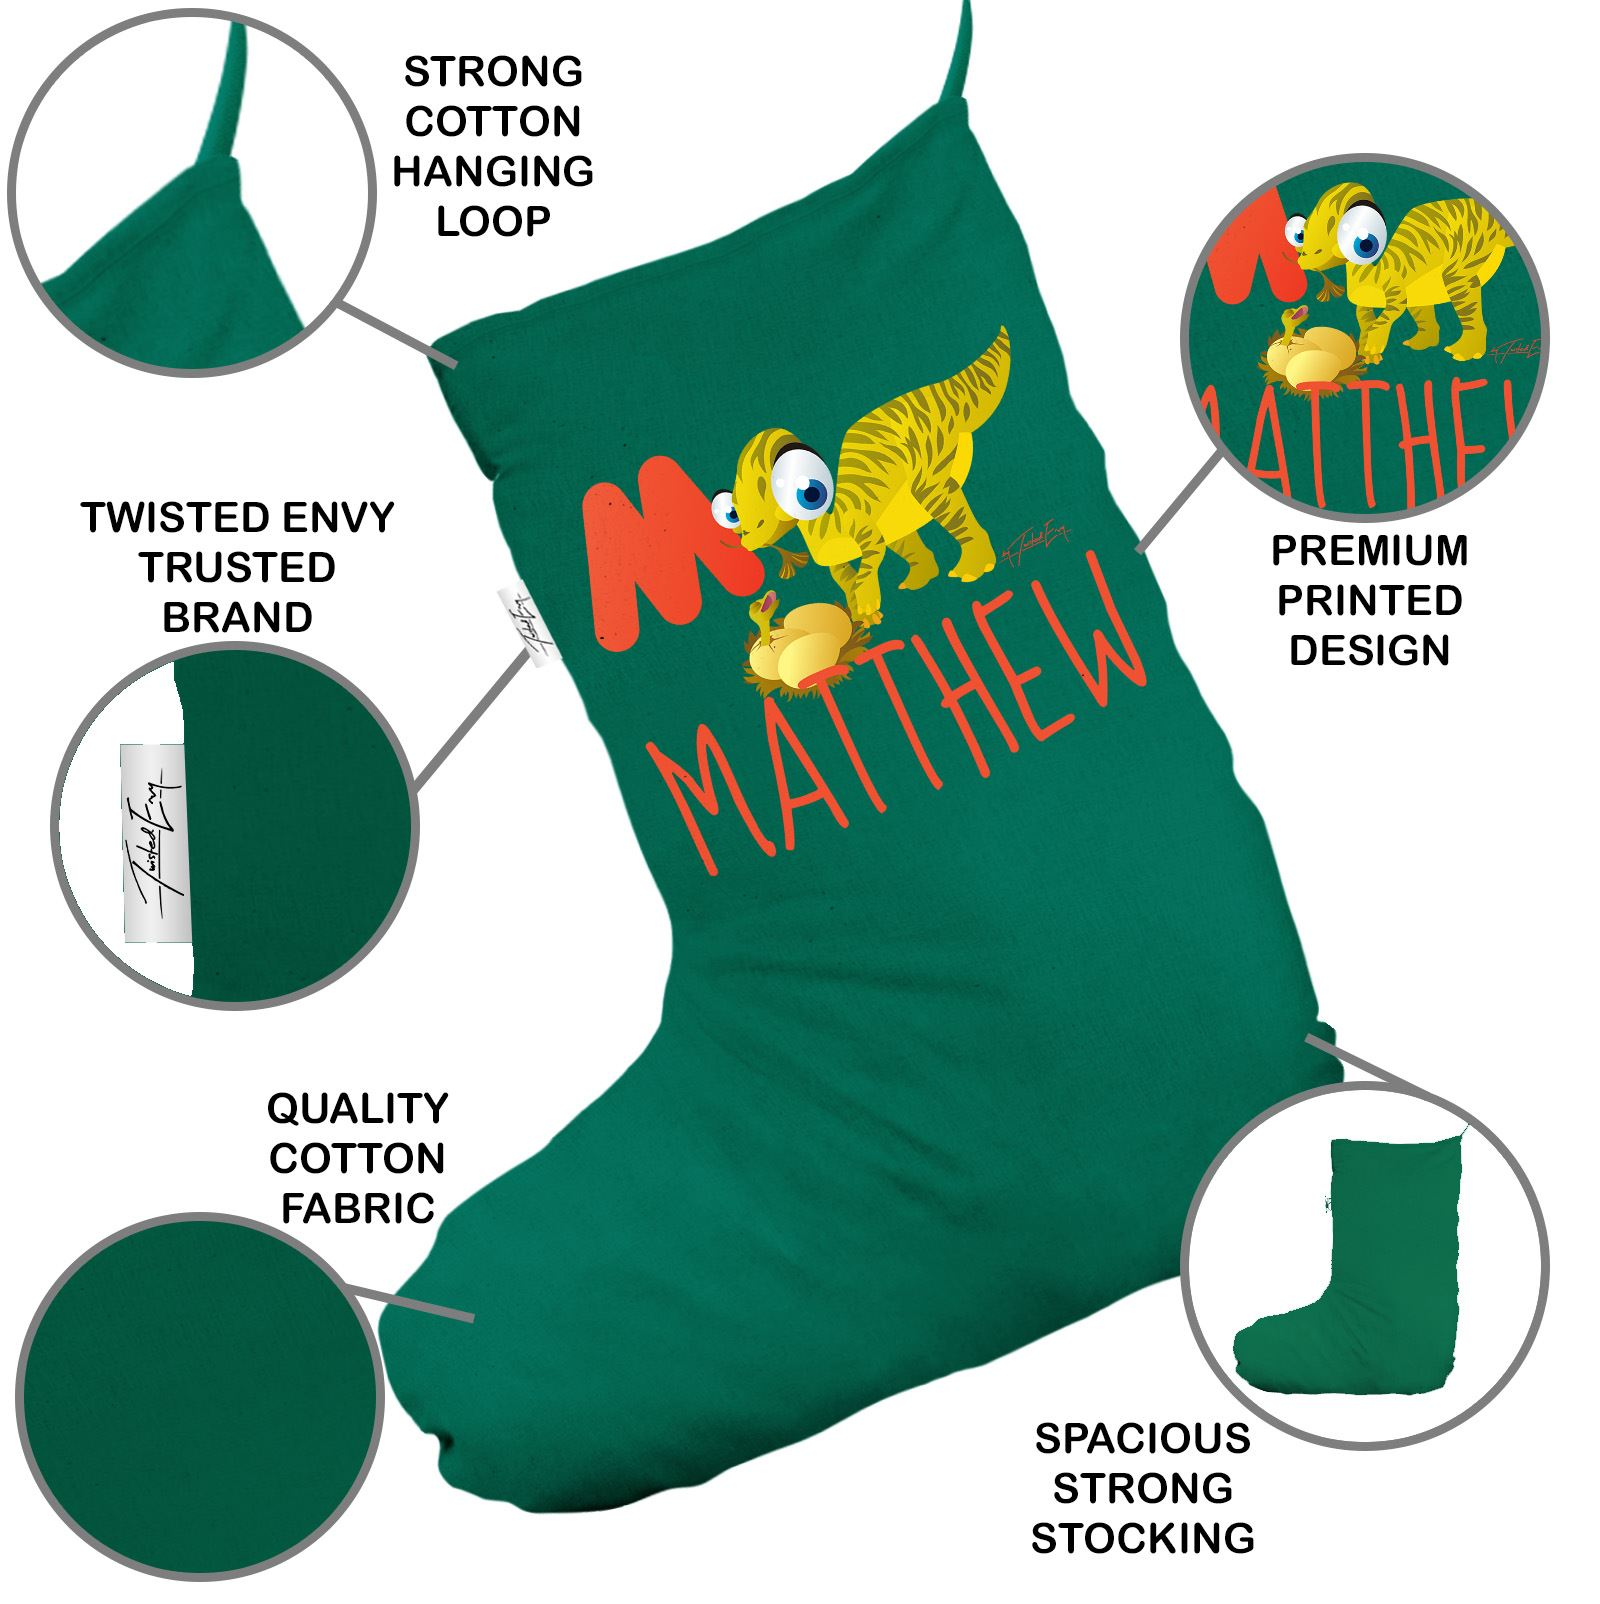 Letter Christmas Stockings.Details About Personalised Baby Dinosaur Letter M Green Santa Claus Christmas Stockings